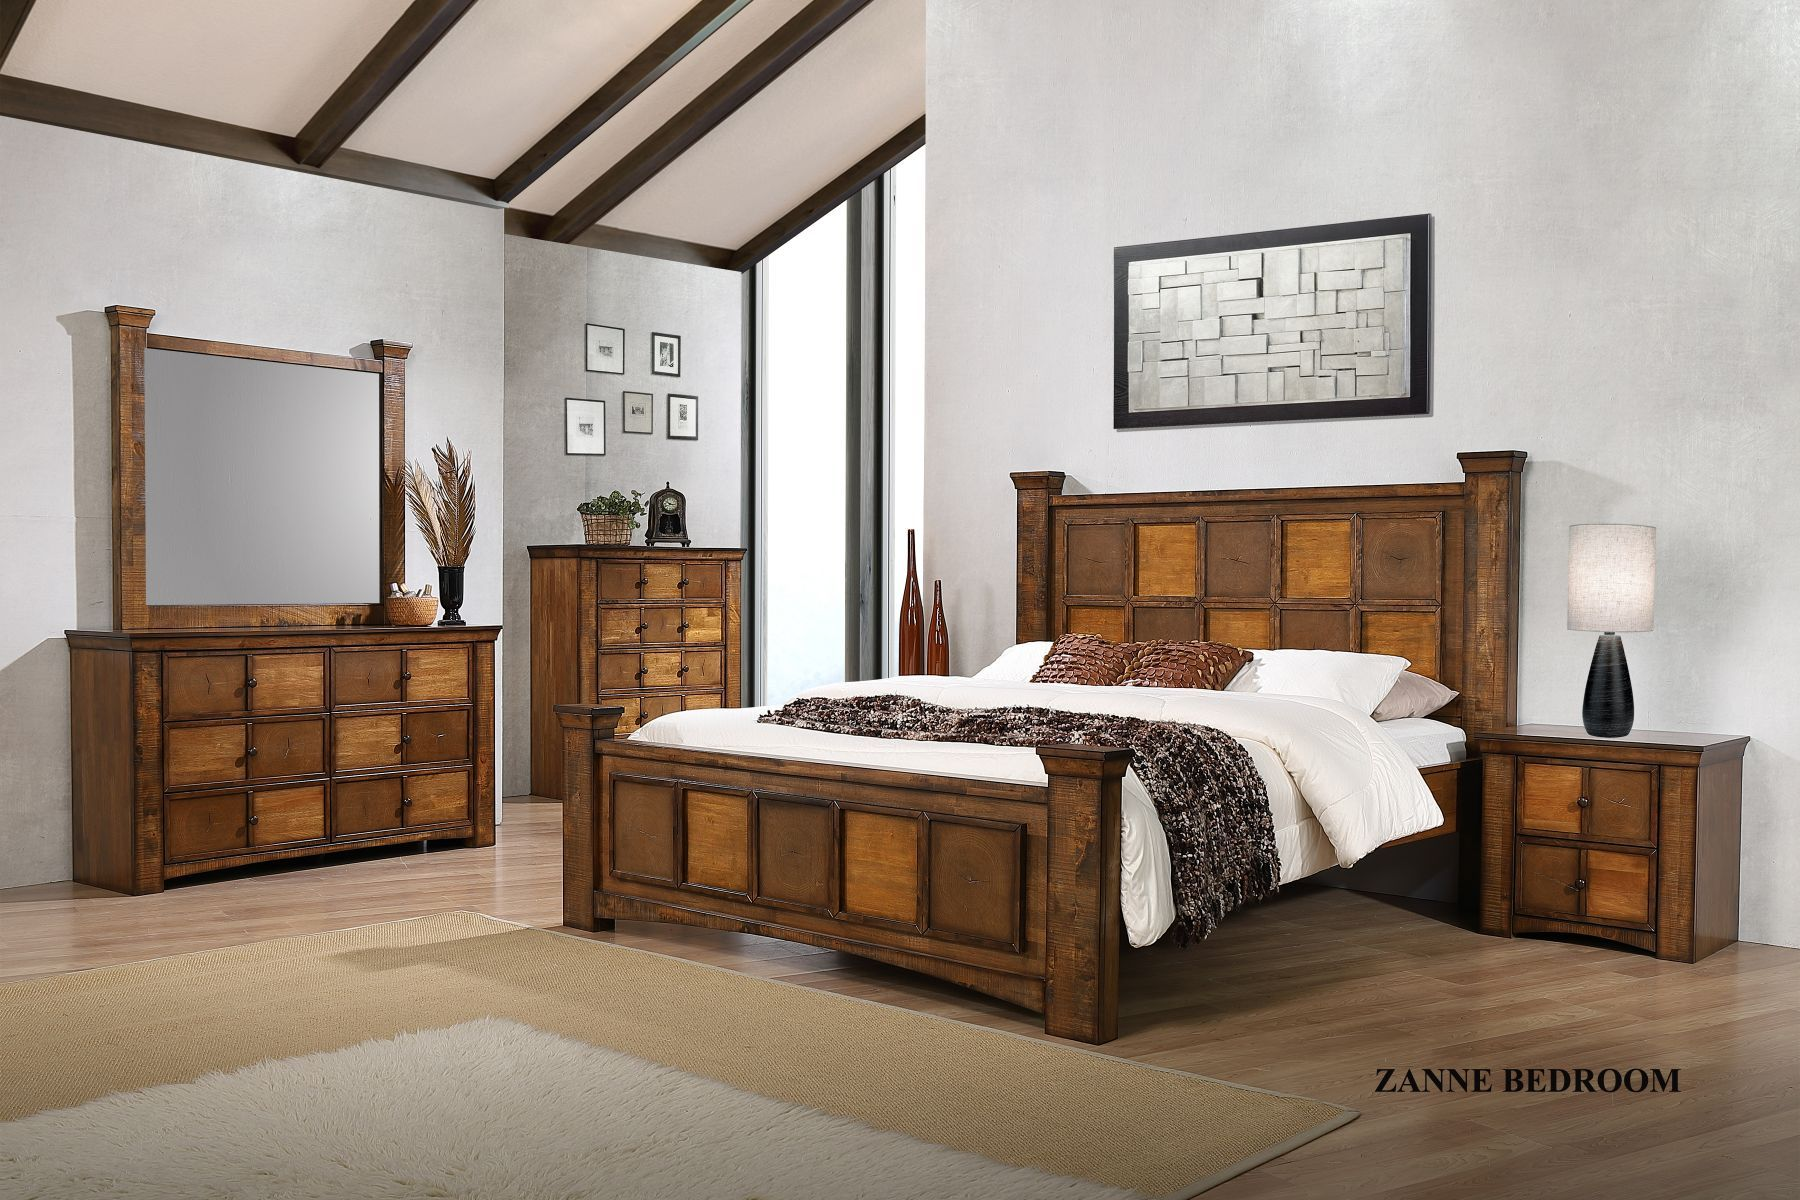 The Best Things To Have With A Wooden Bedroom Furniture - Decortage